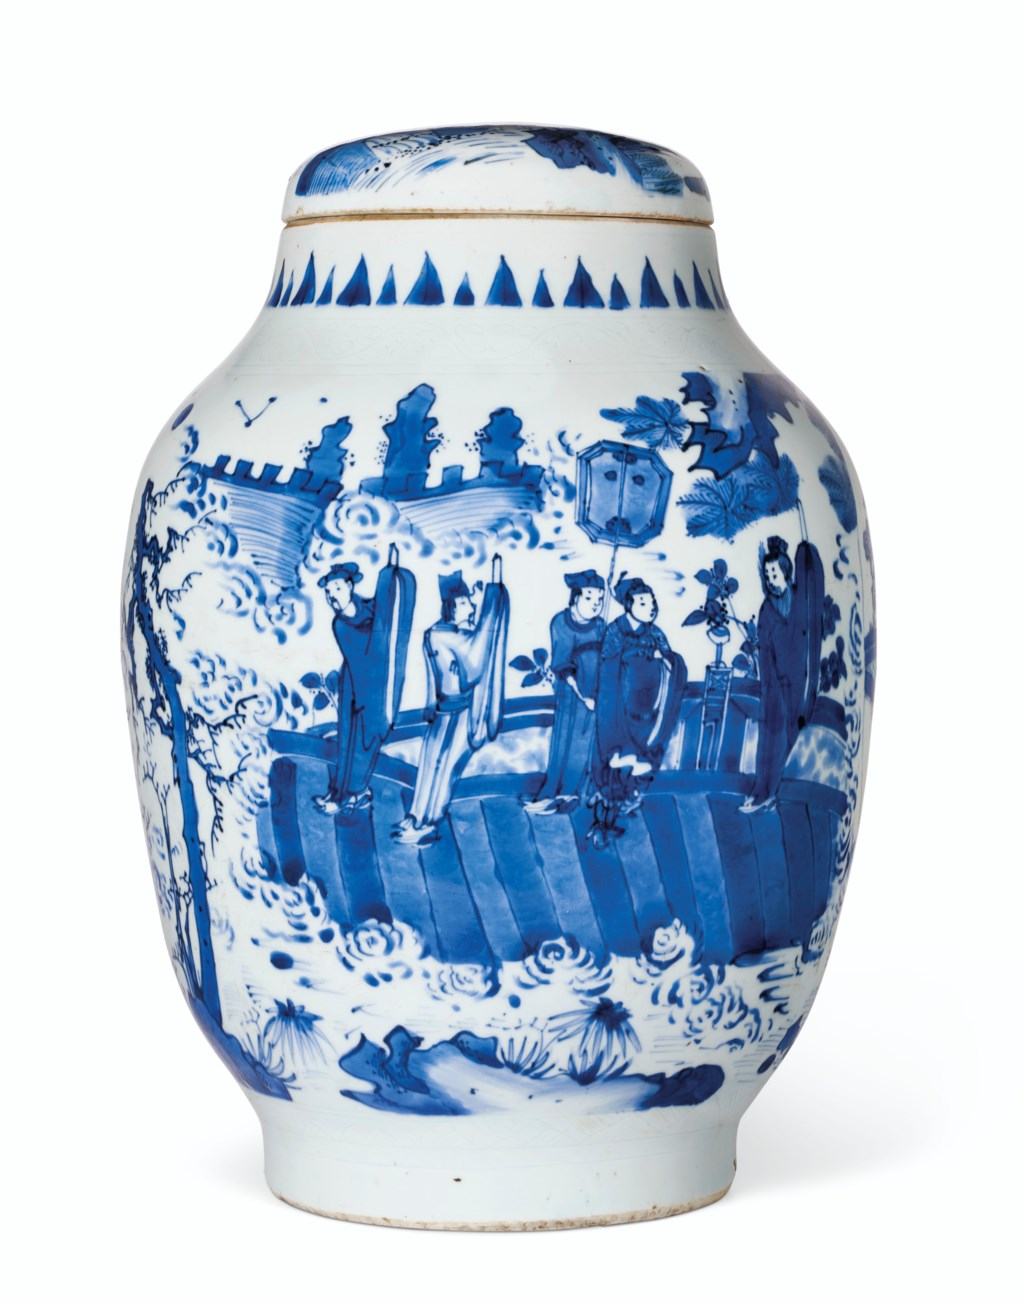 A RARE LARGE BLUE AND WHITE OVOID JAR AND COVER